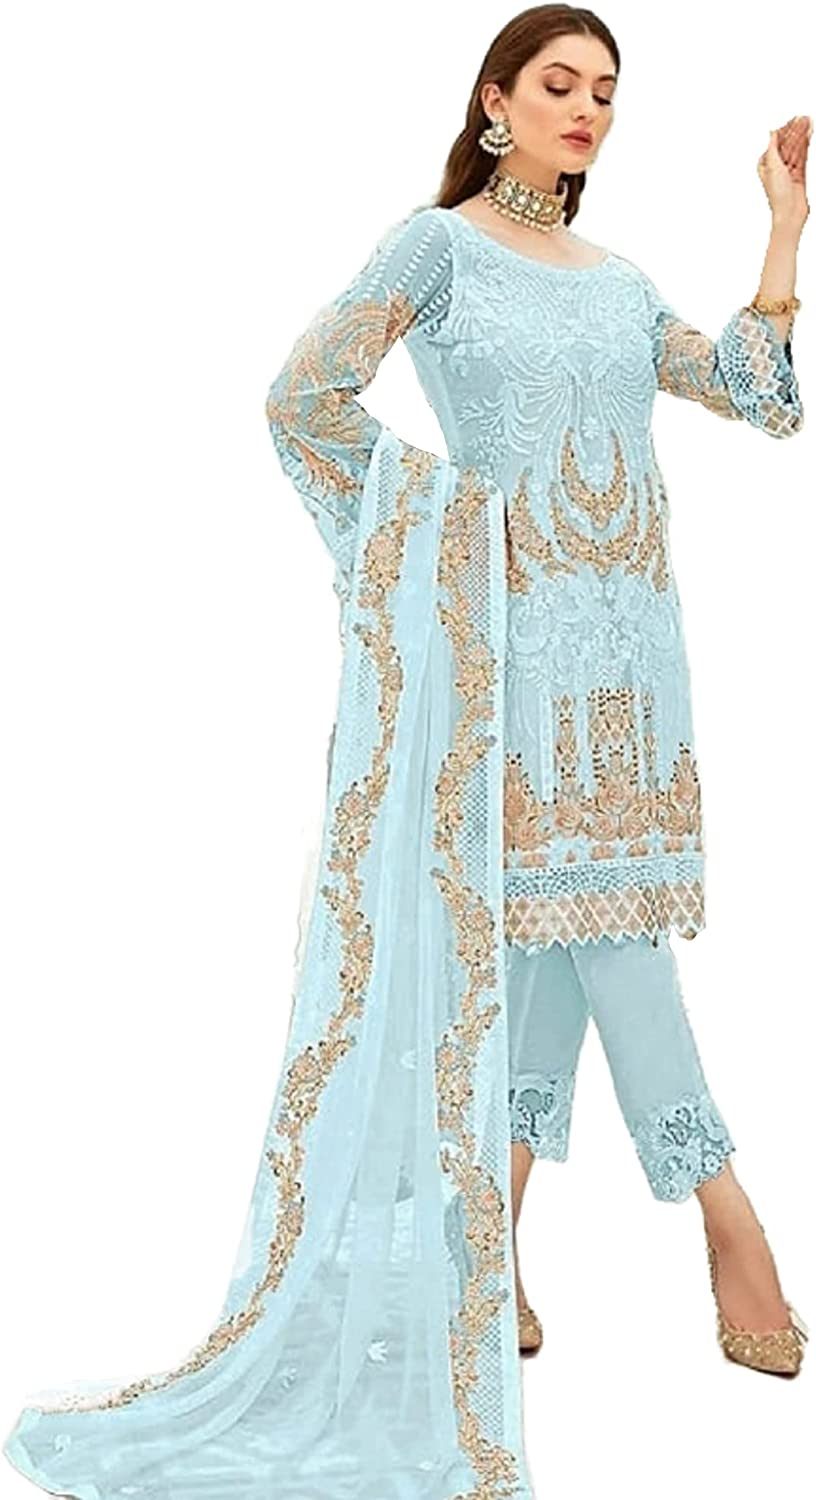 Pakistani Outfits Traditional Wear Salwar Kameez Trouser Pant Suits Ready to Wear Dress